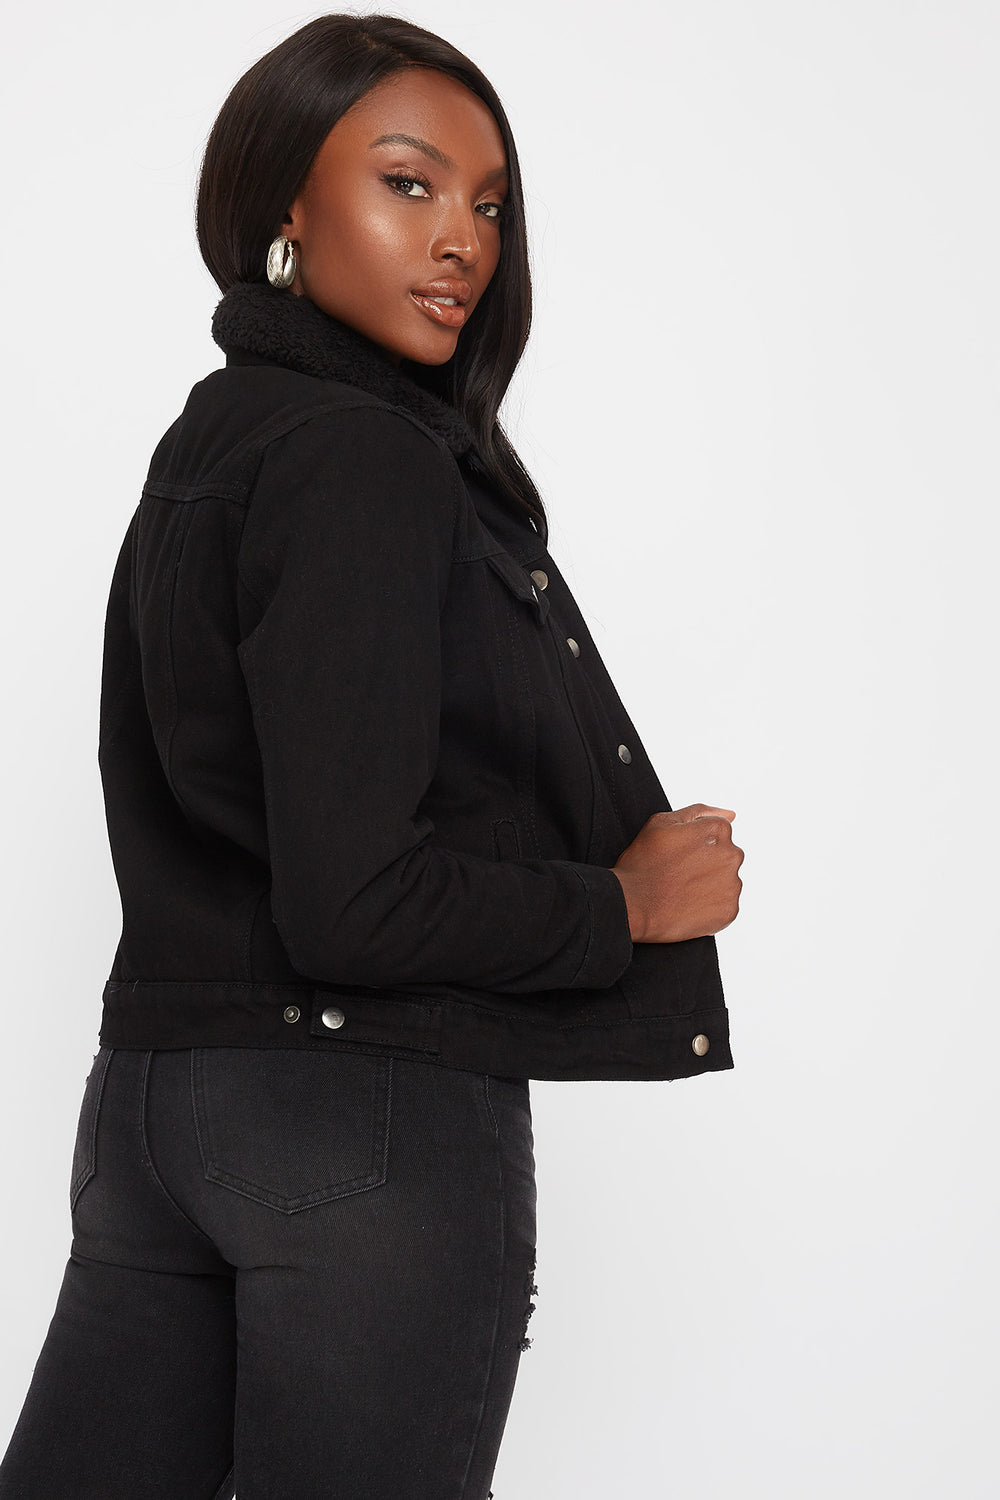 Black Sherpa Denim Trucker Jacket Black